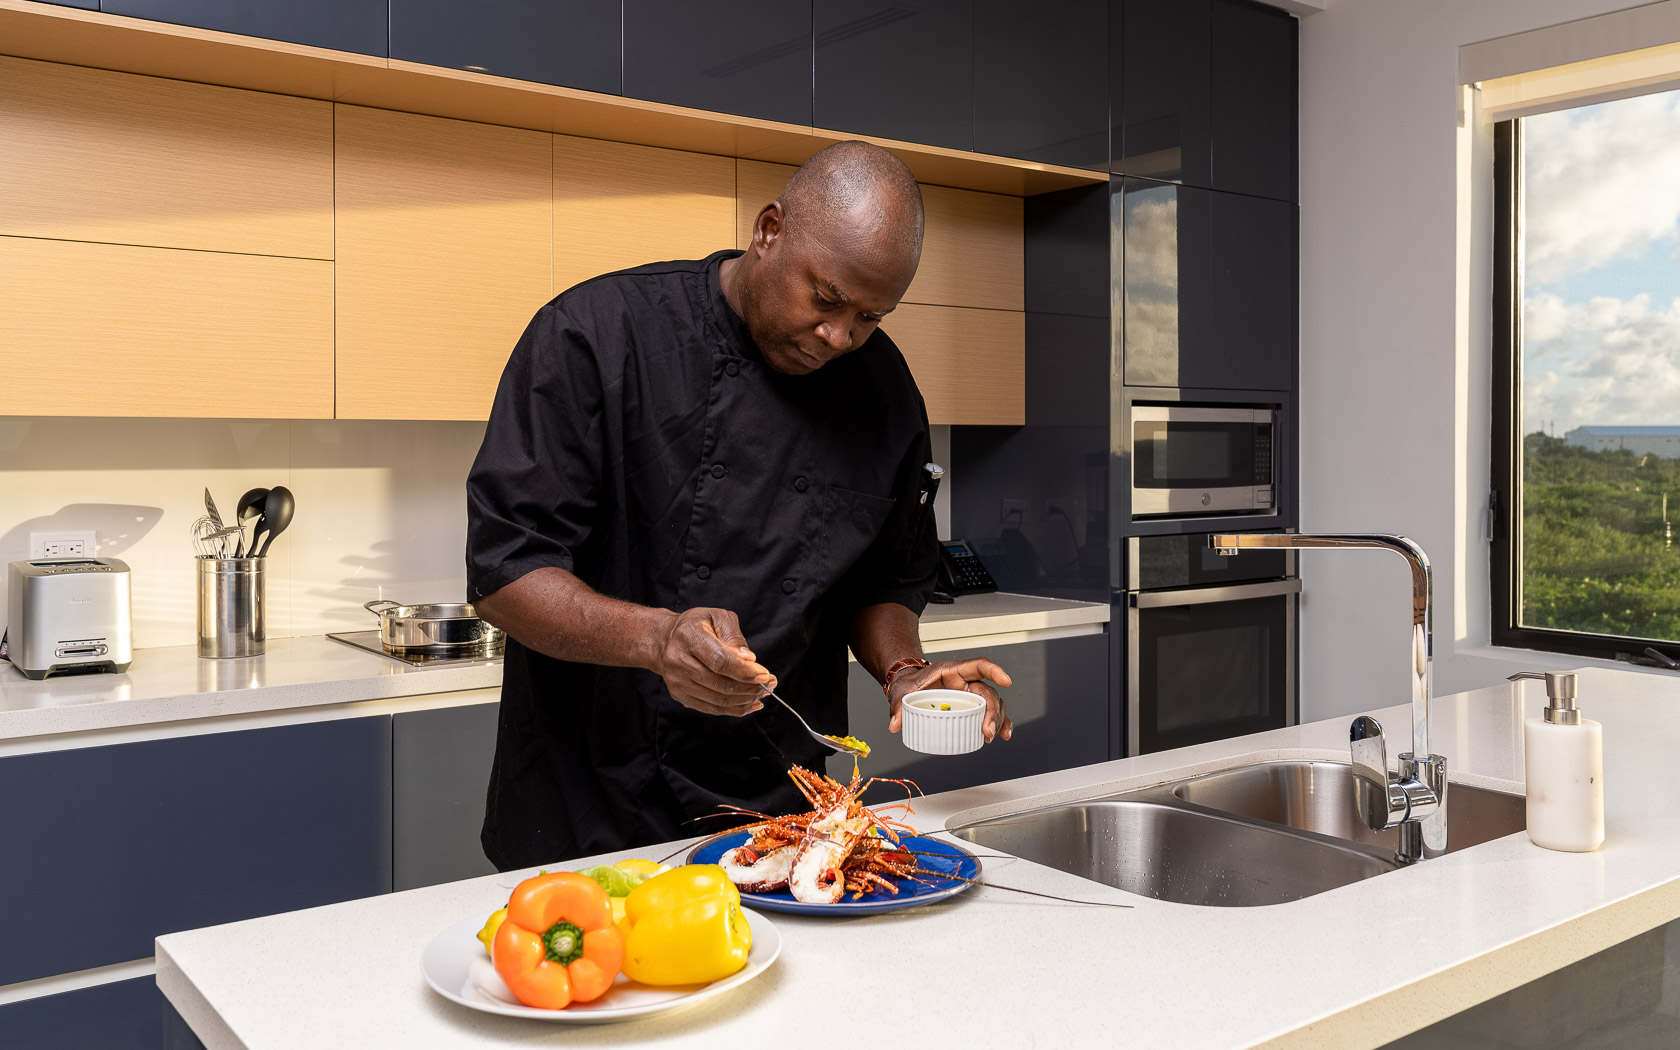 chef plating lobster meal in spacious kitchen